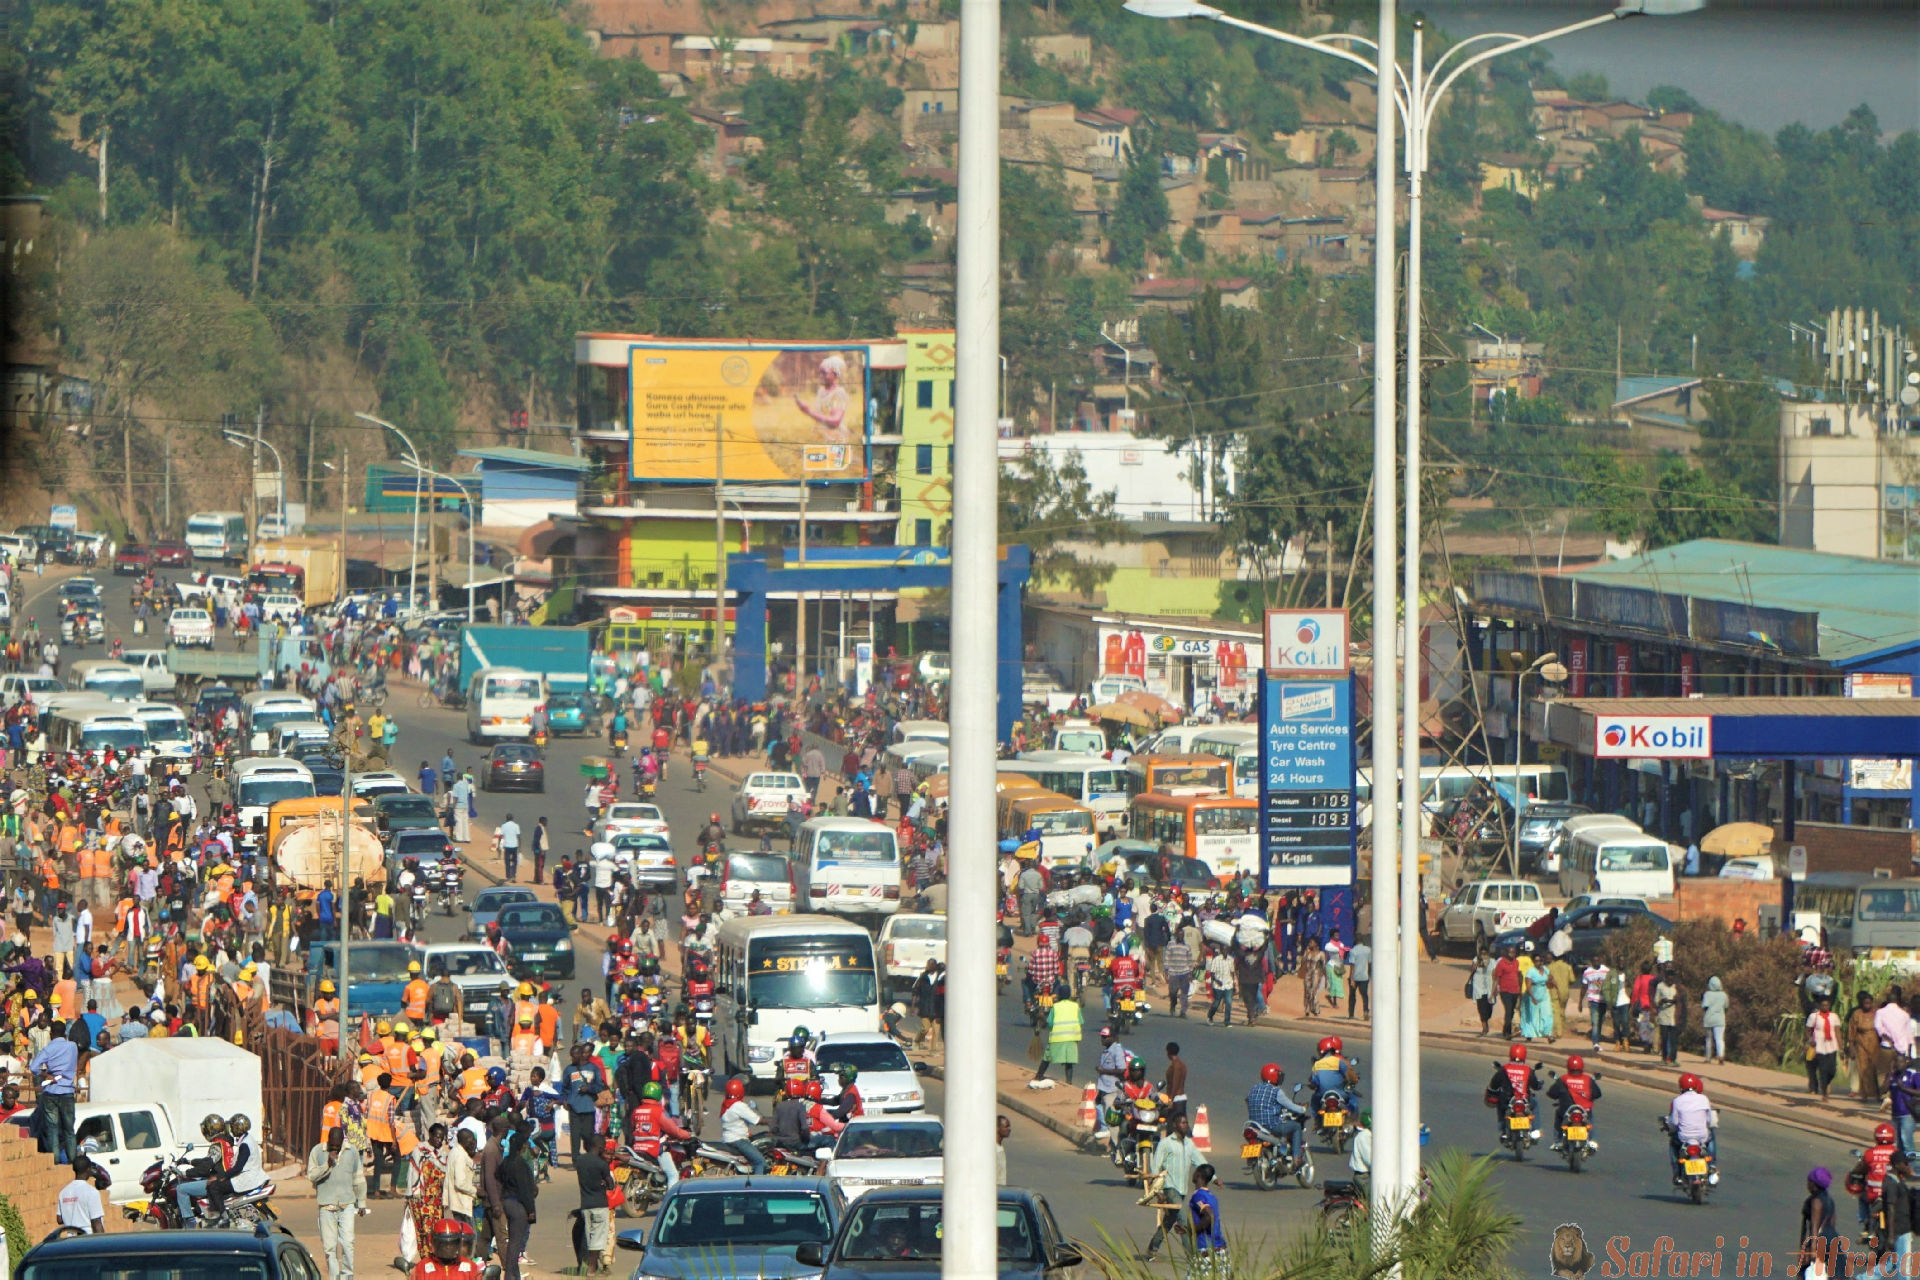 Bustling crowds amid shops in main intersection of downtown Kigali in Rwanda